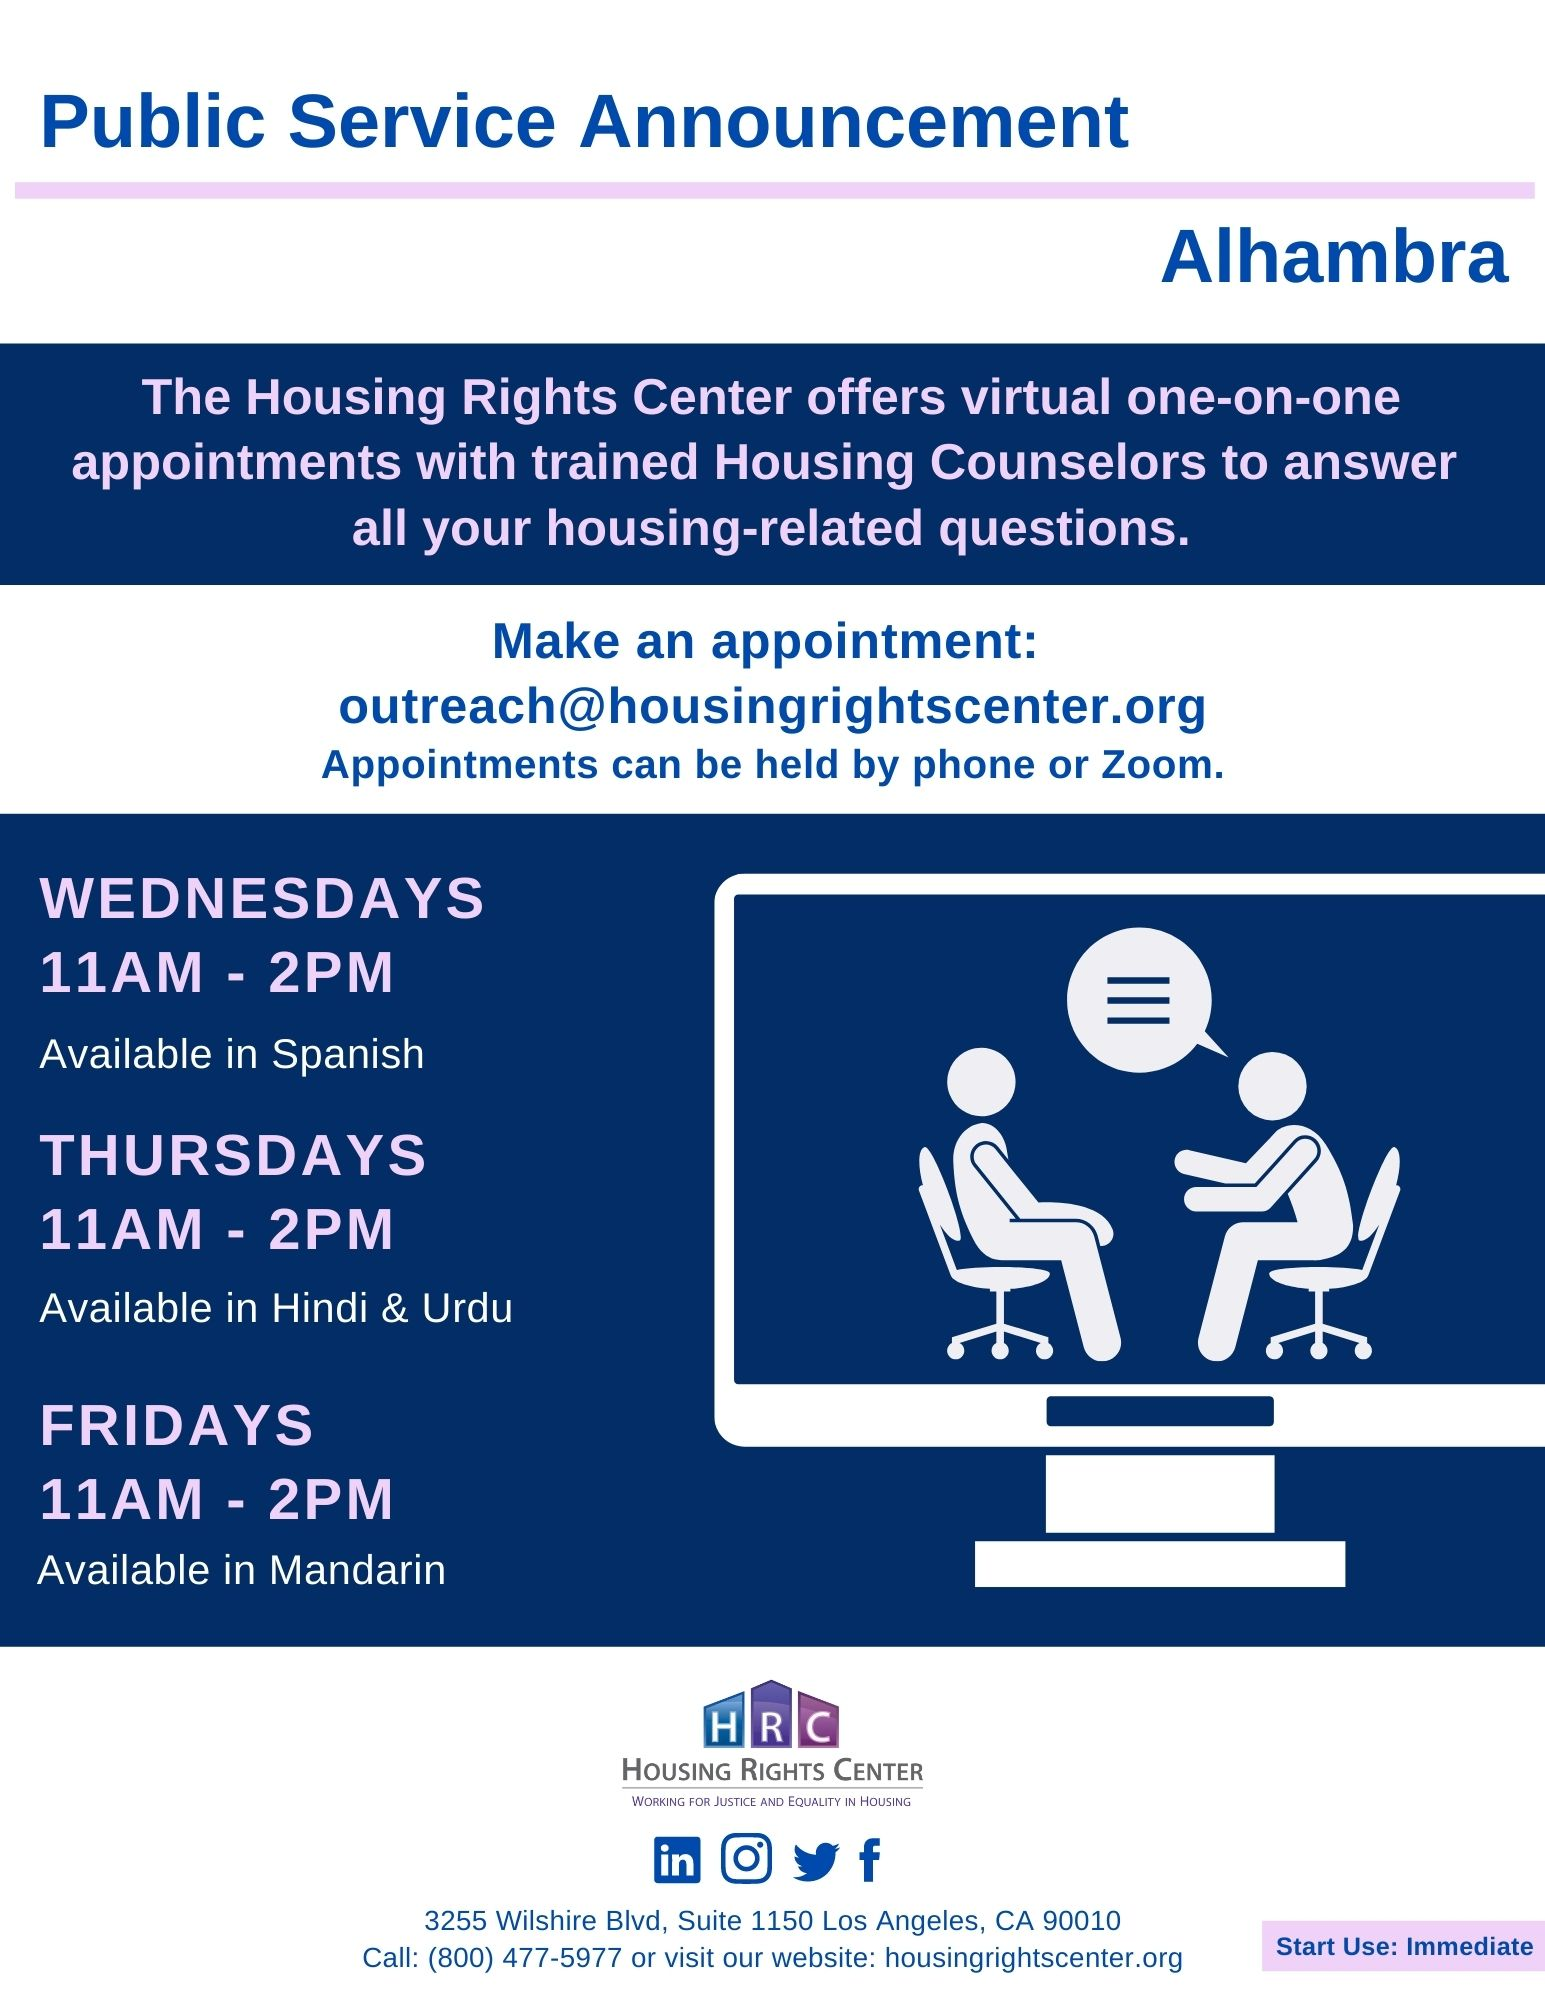 PSA on Housing Rights Center appointment opportunities